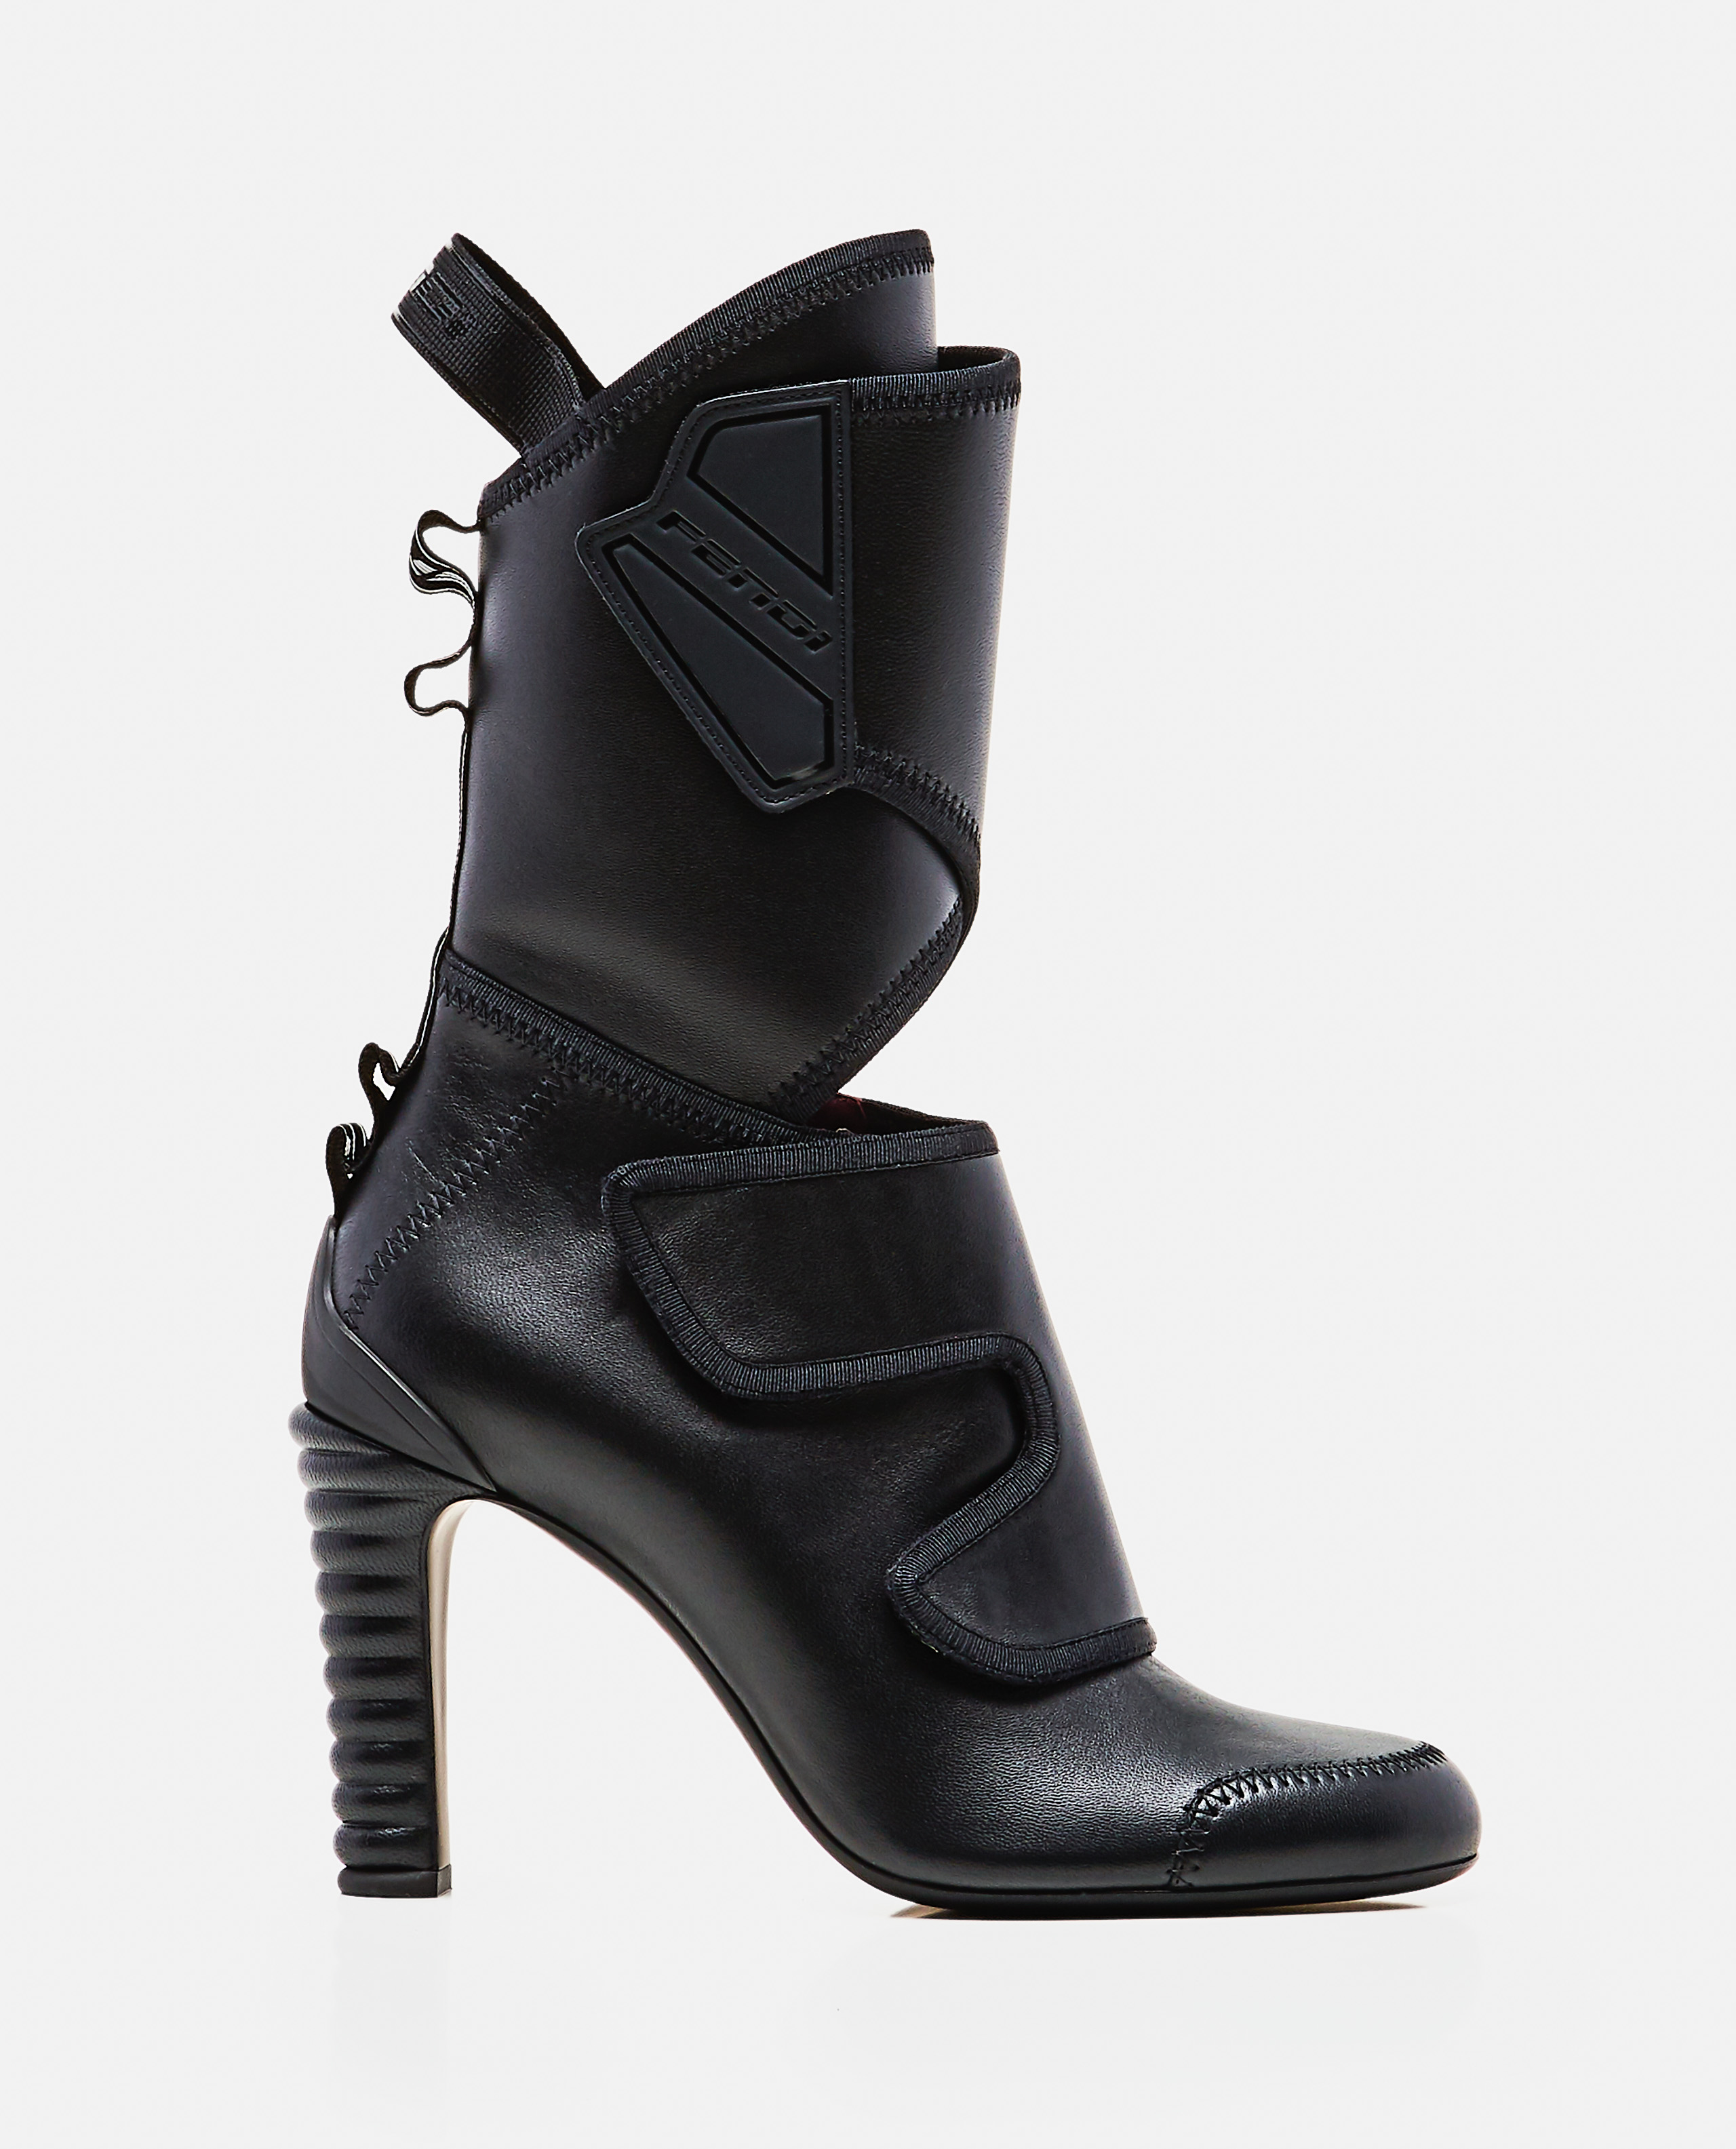 Promenade Bootie in leather